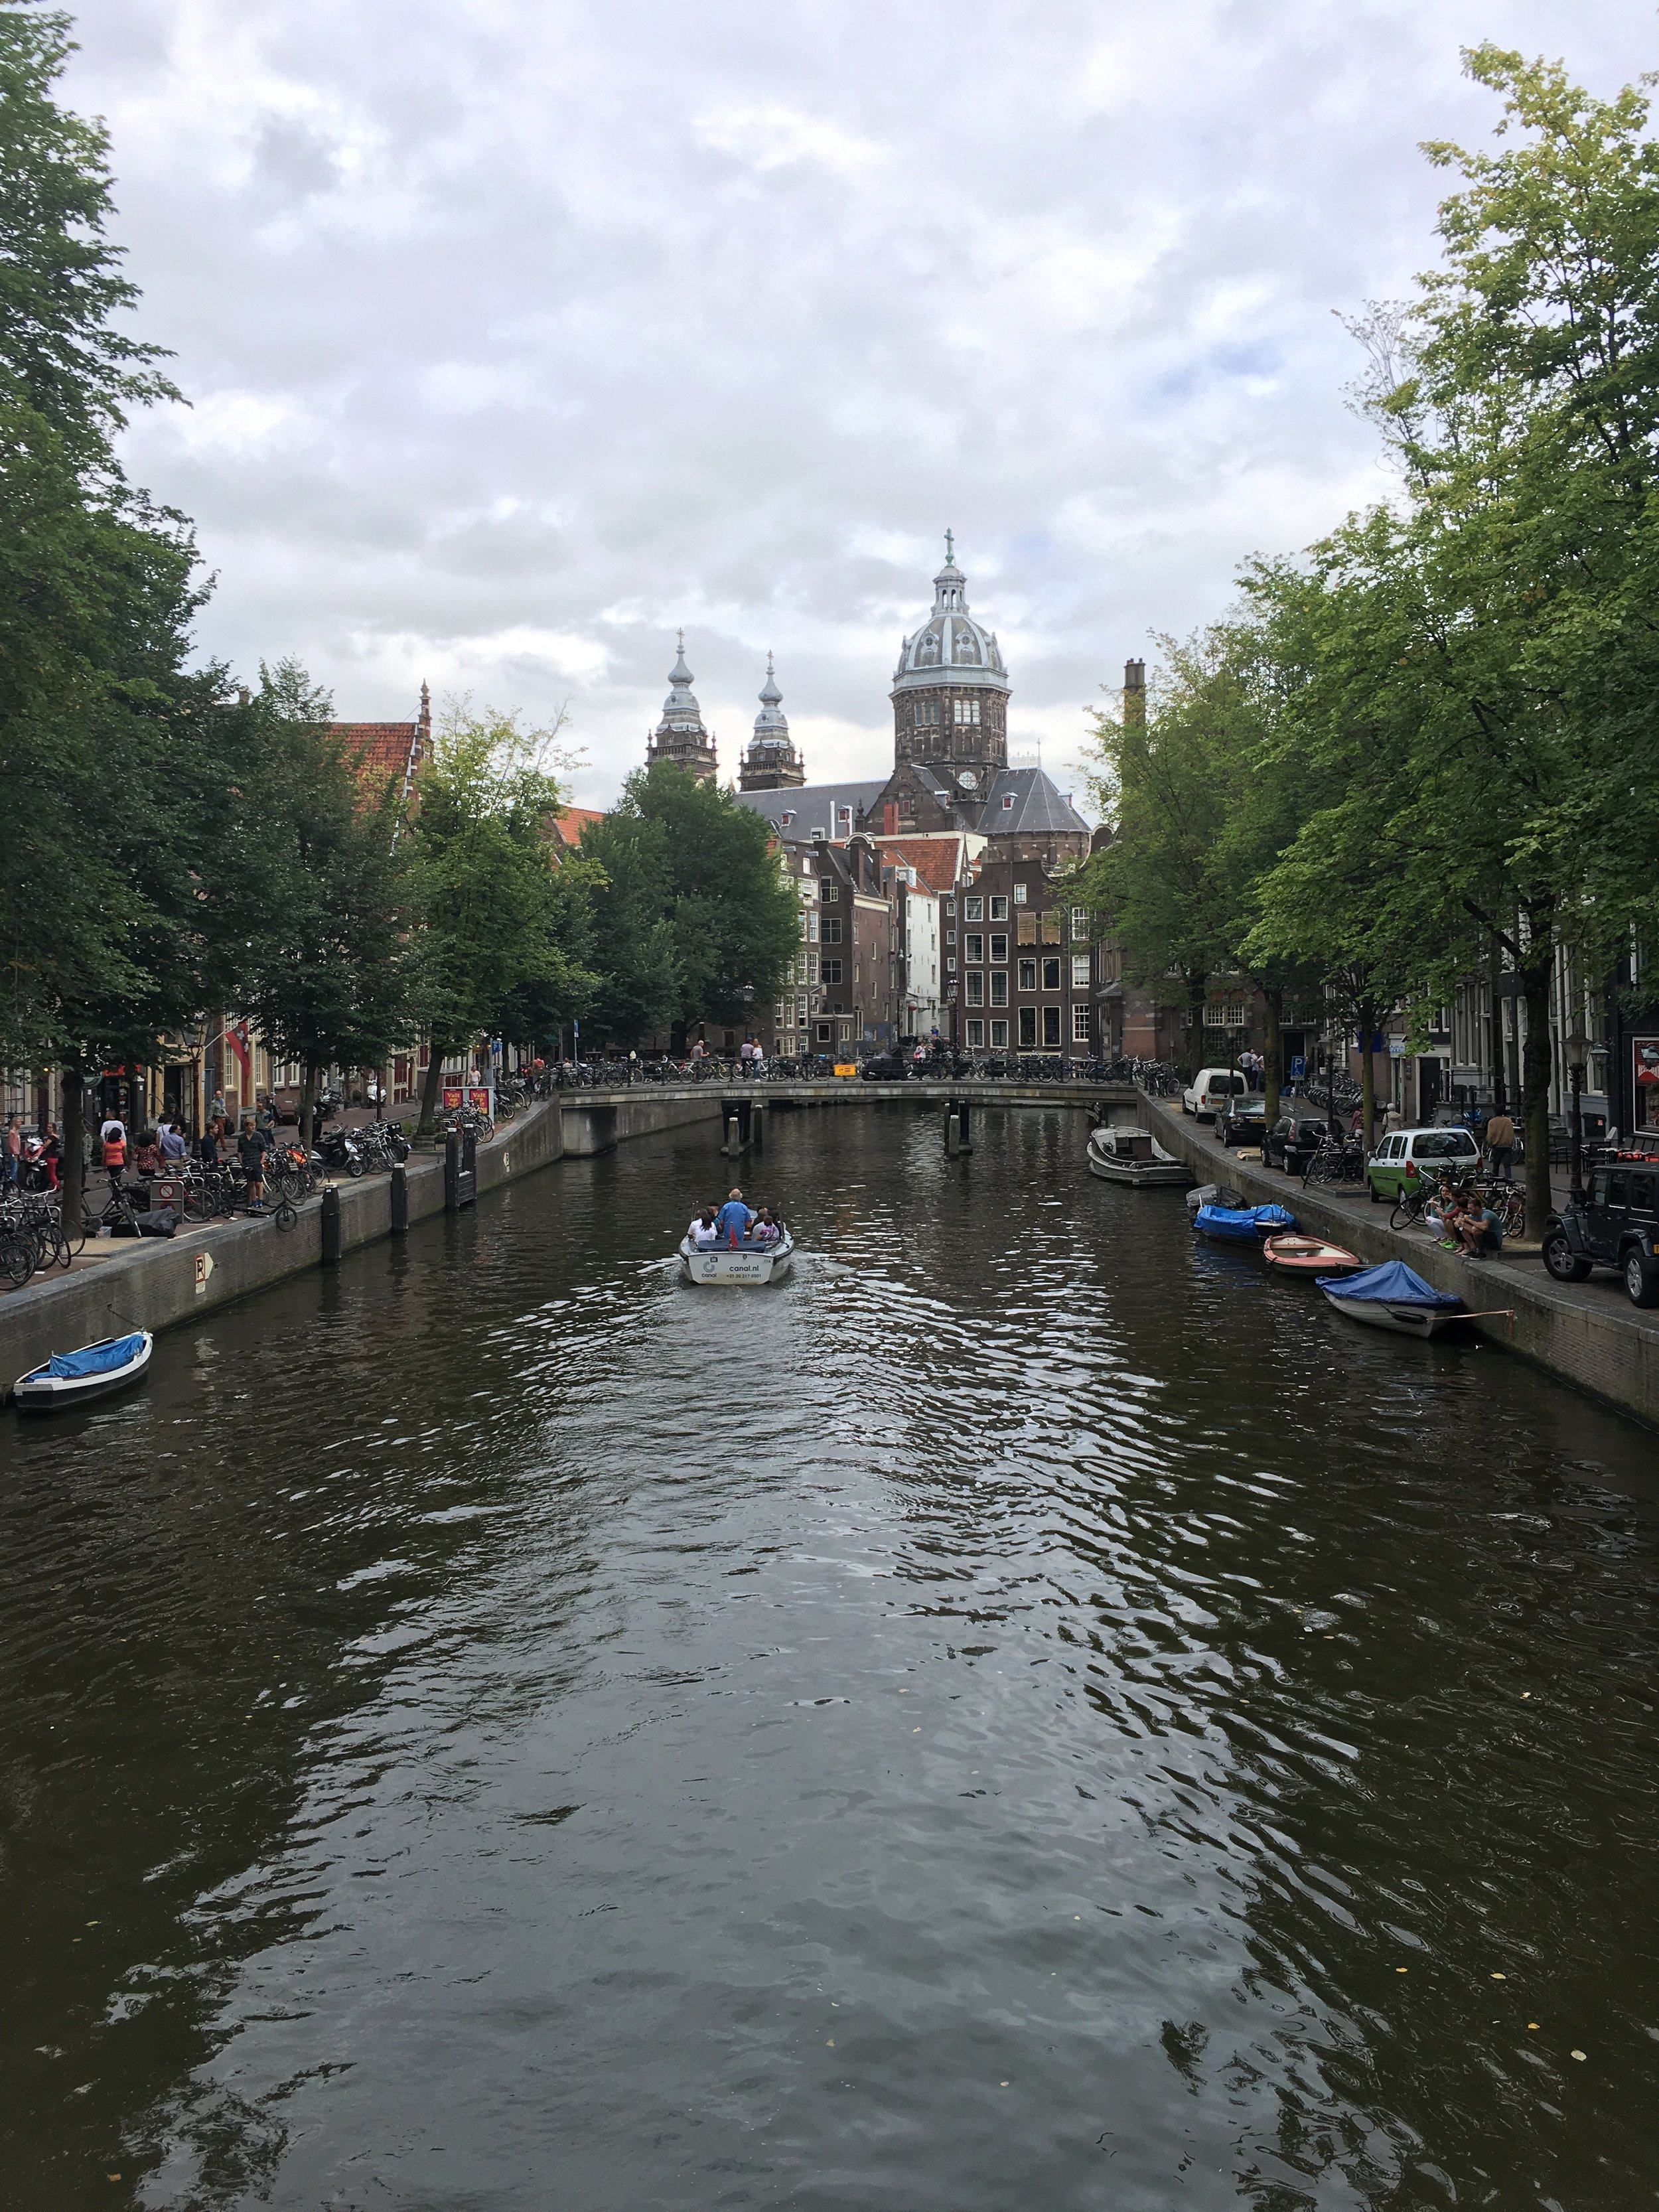 Such beautiful canals put to use! If only other countries would hop on this form of transportation!